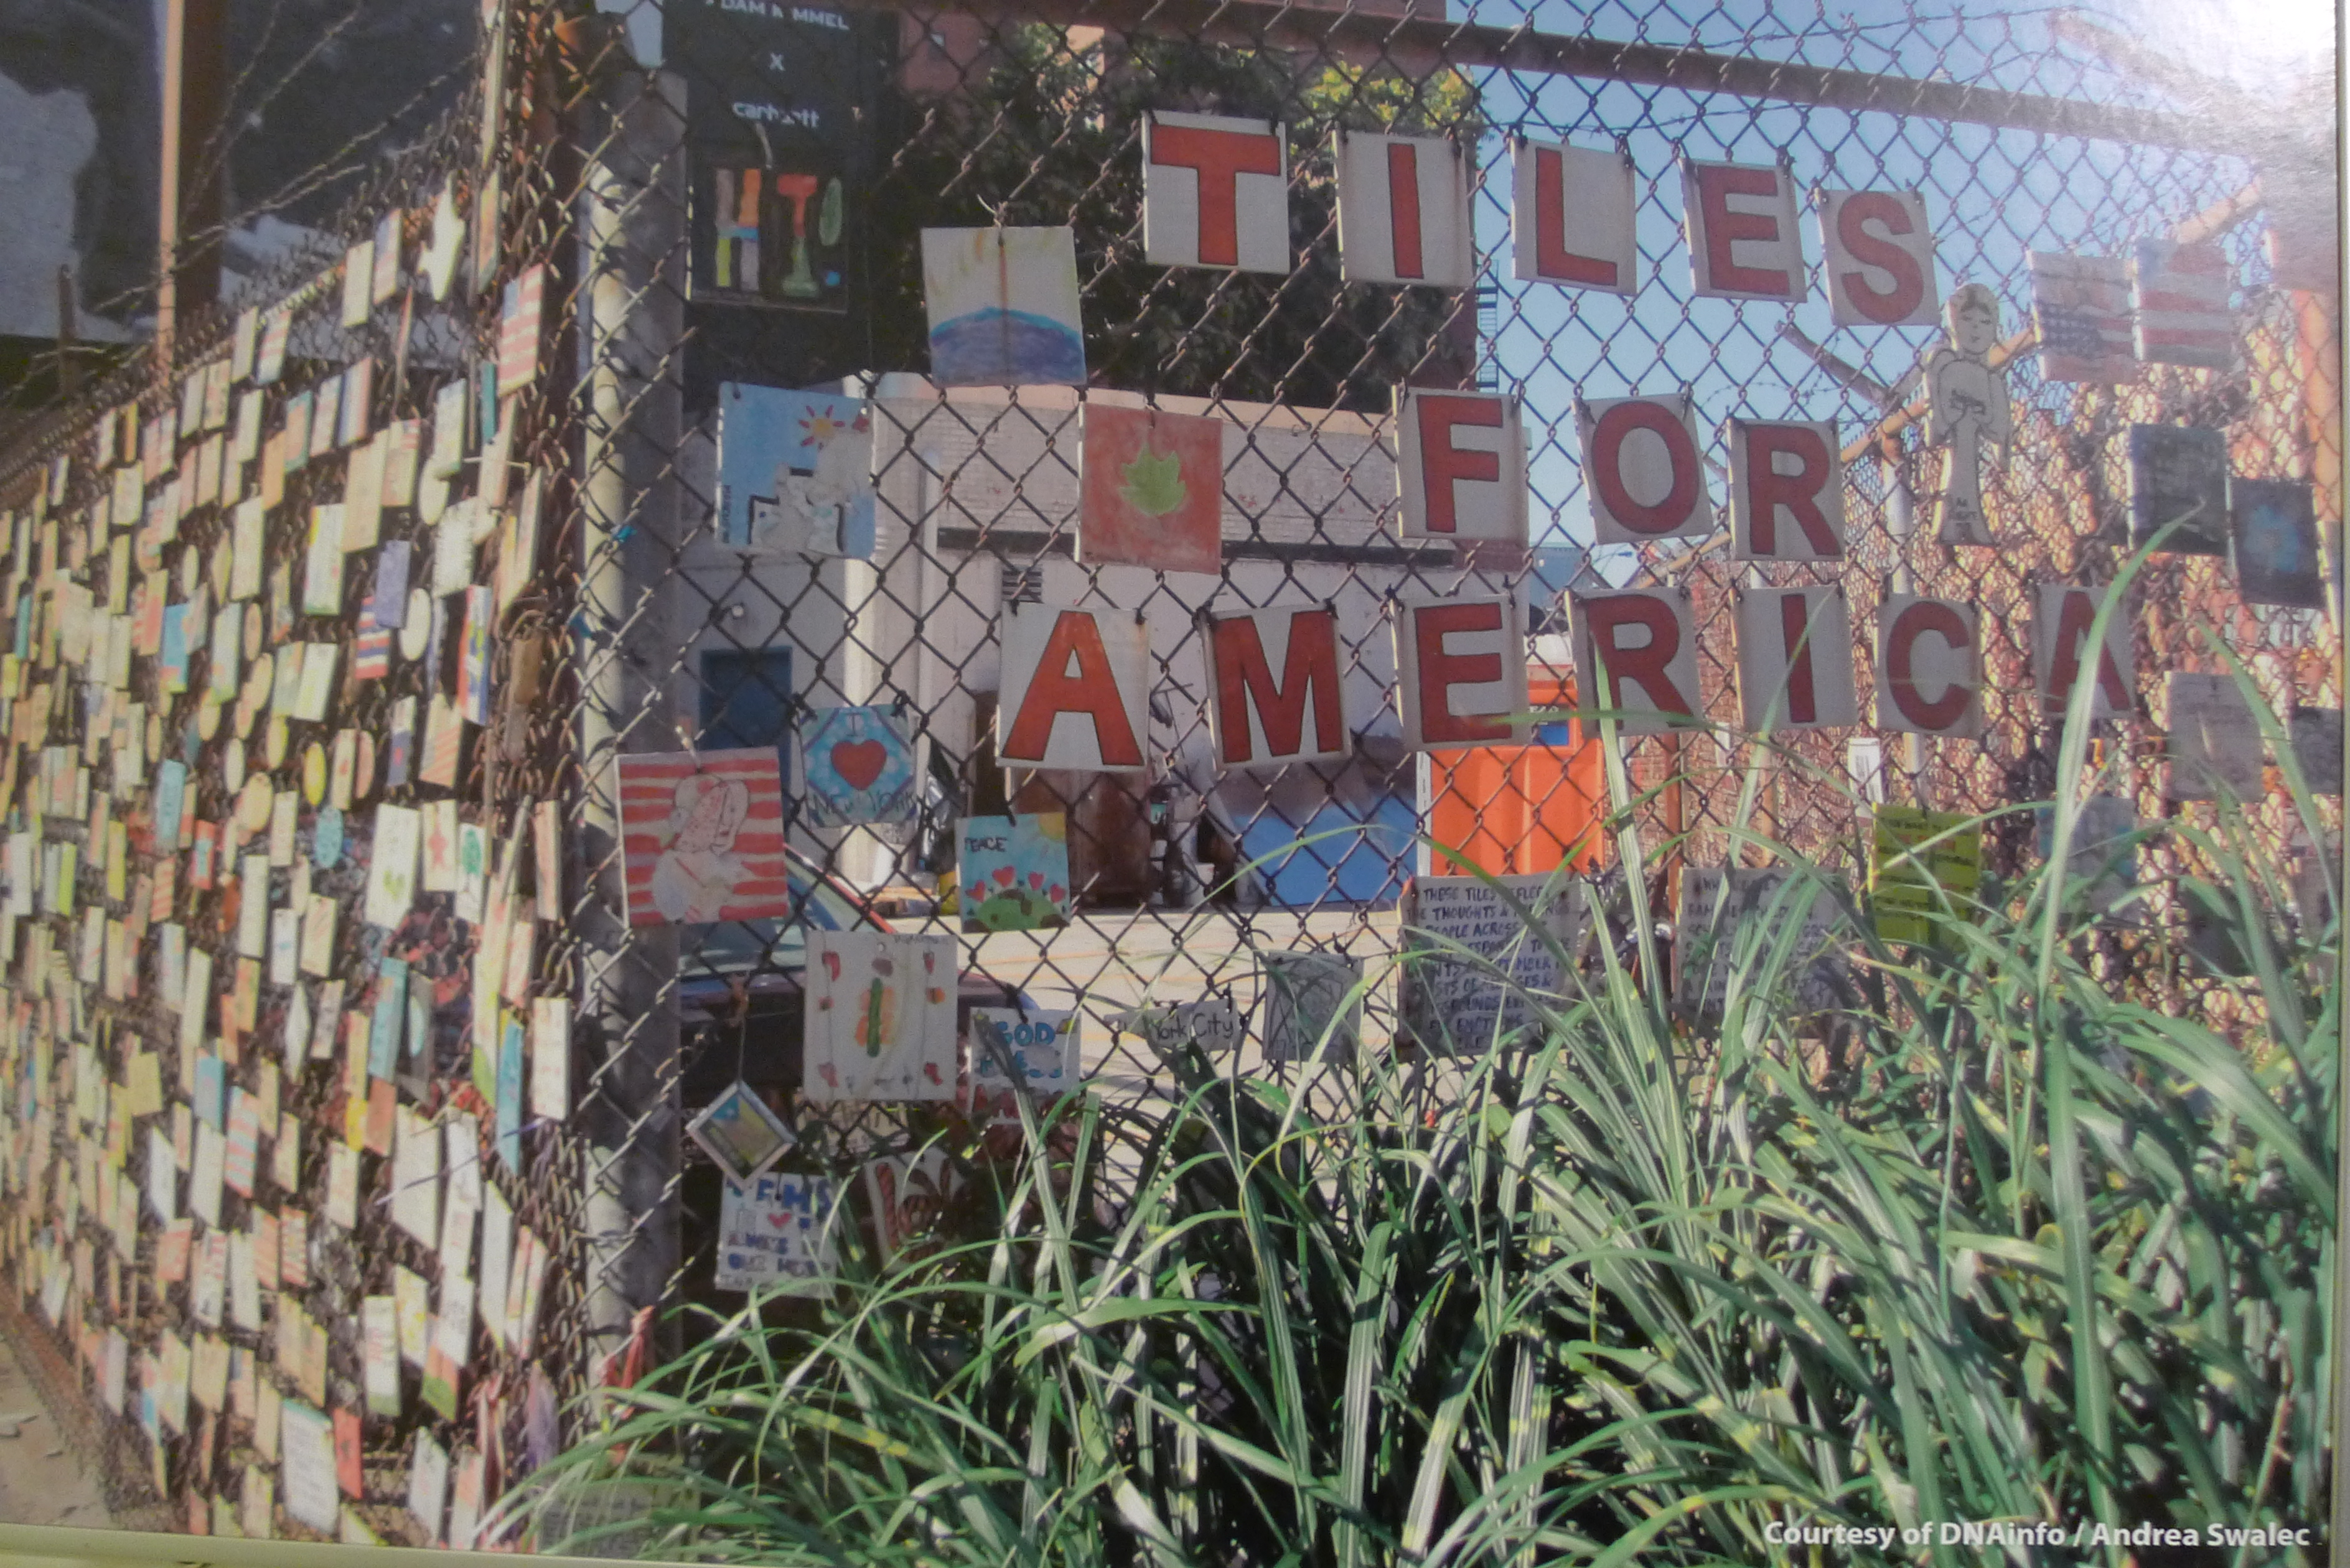 Tiles for America hanging on a fence in the West Village before they were removed